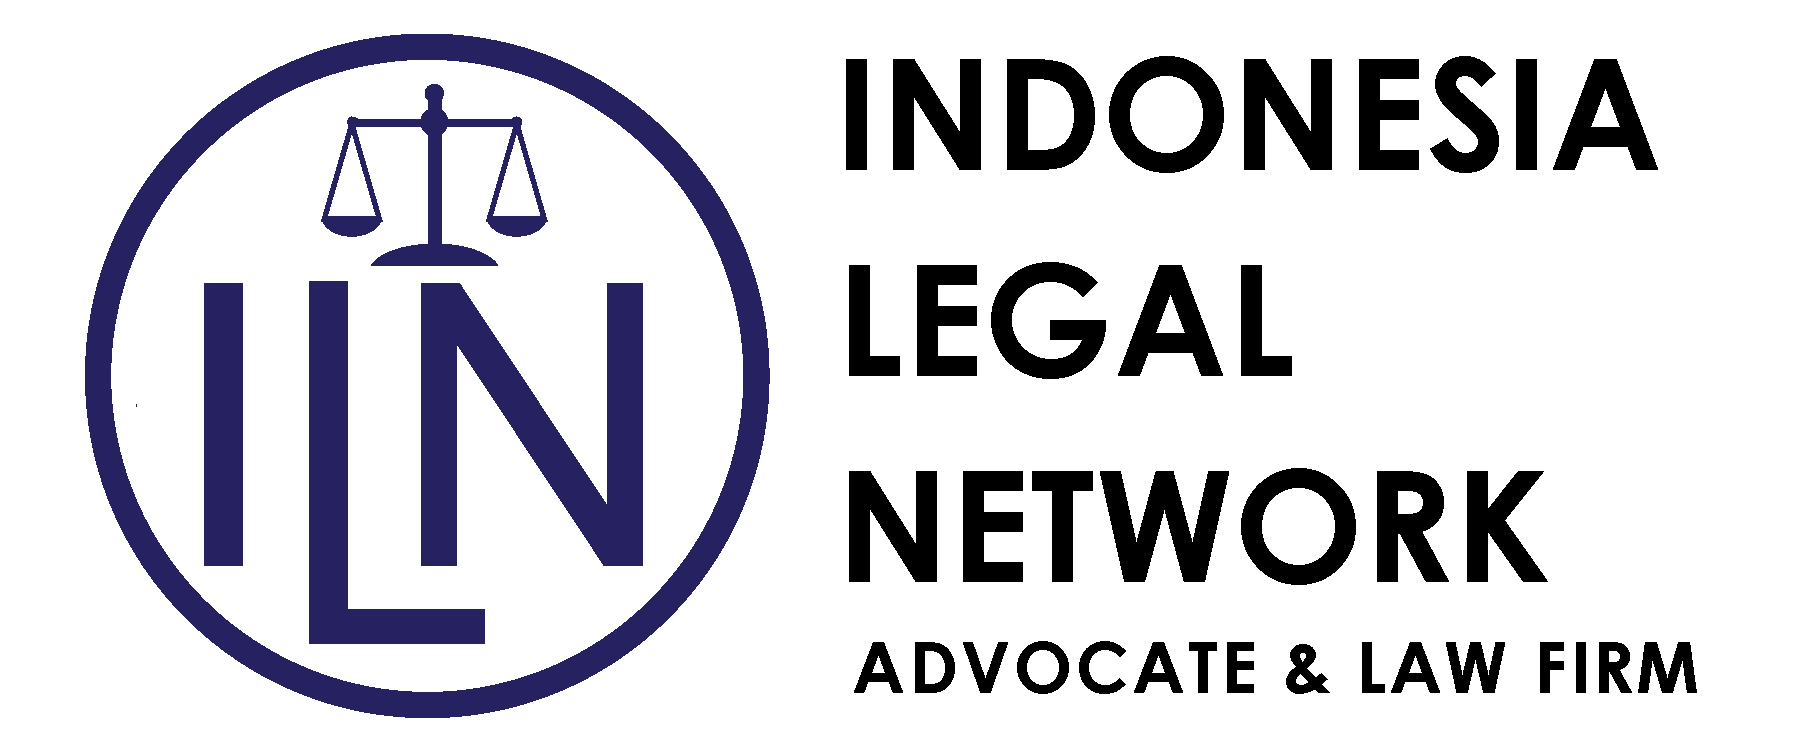 Indonesia Legal Network